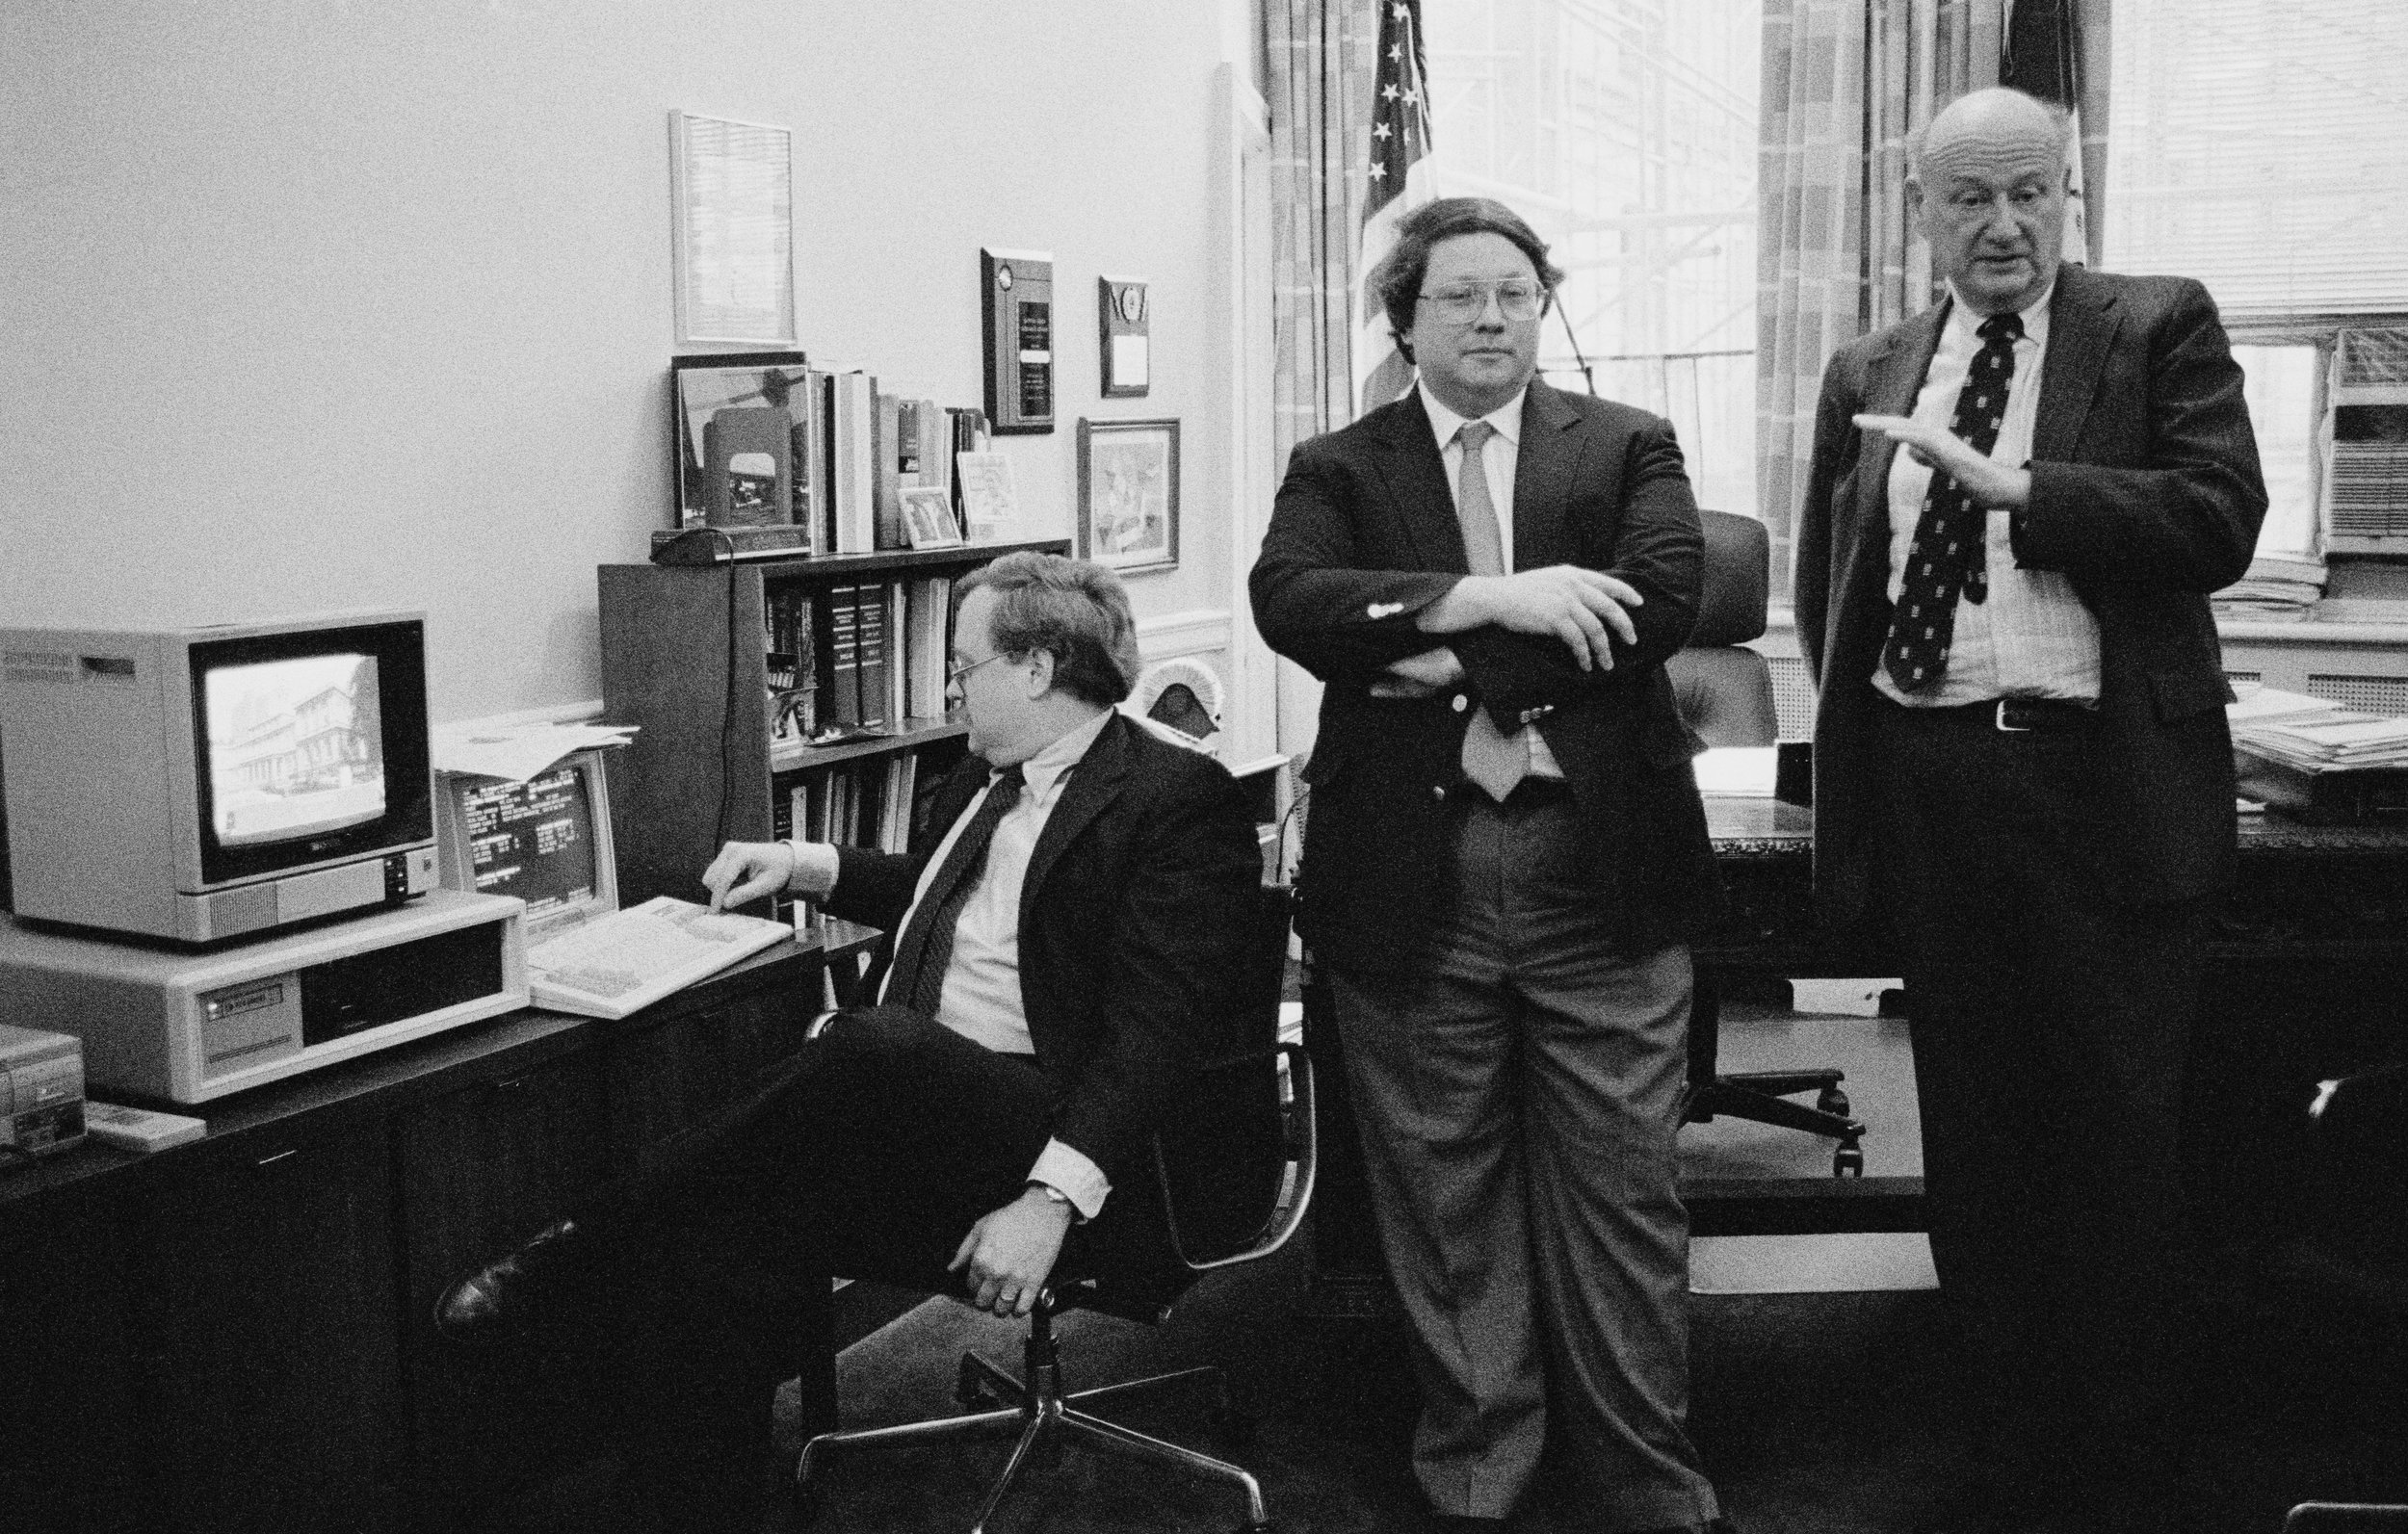 Department of Finance staff demonstrating the laser video disc system to Mayor Edward Koch during a press conference, December 15, 1988. The image on the screen is City Hall. Mayor Edward I Koch Collection, NYC Municipal Archives.